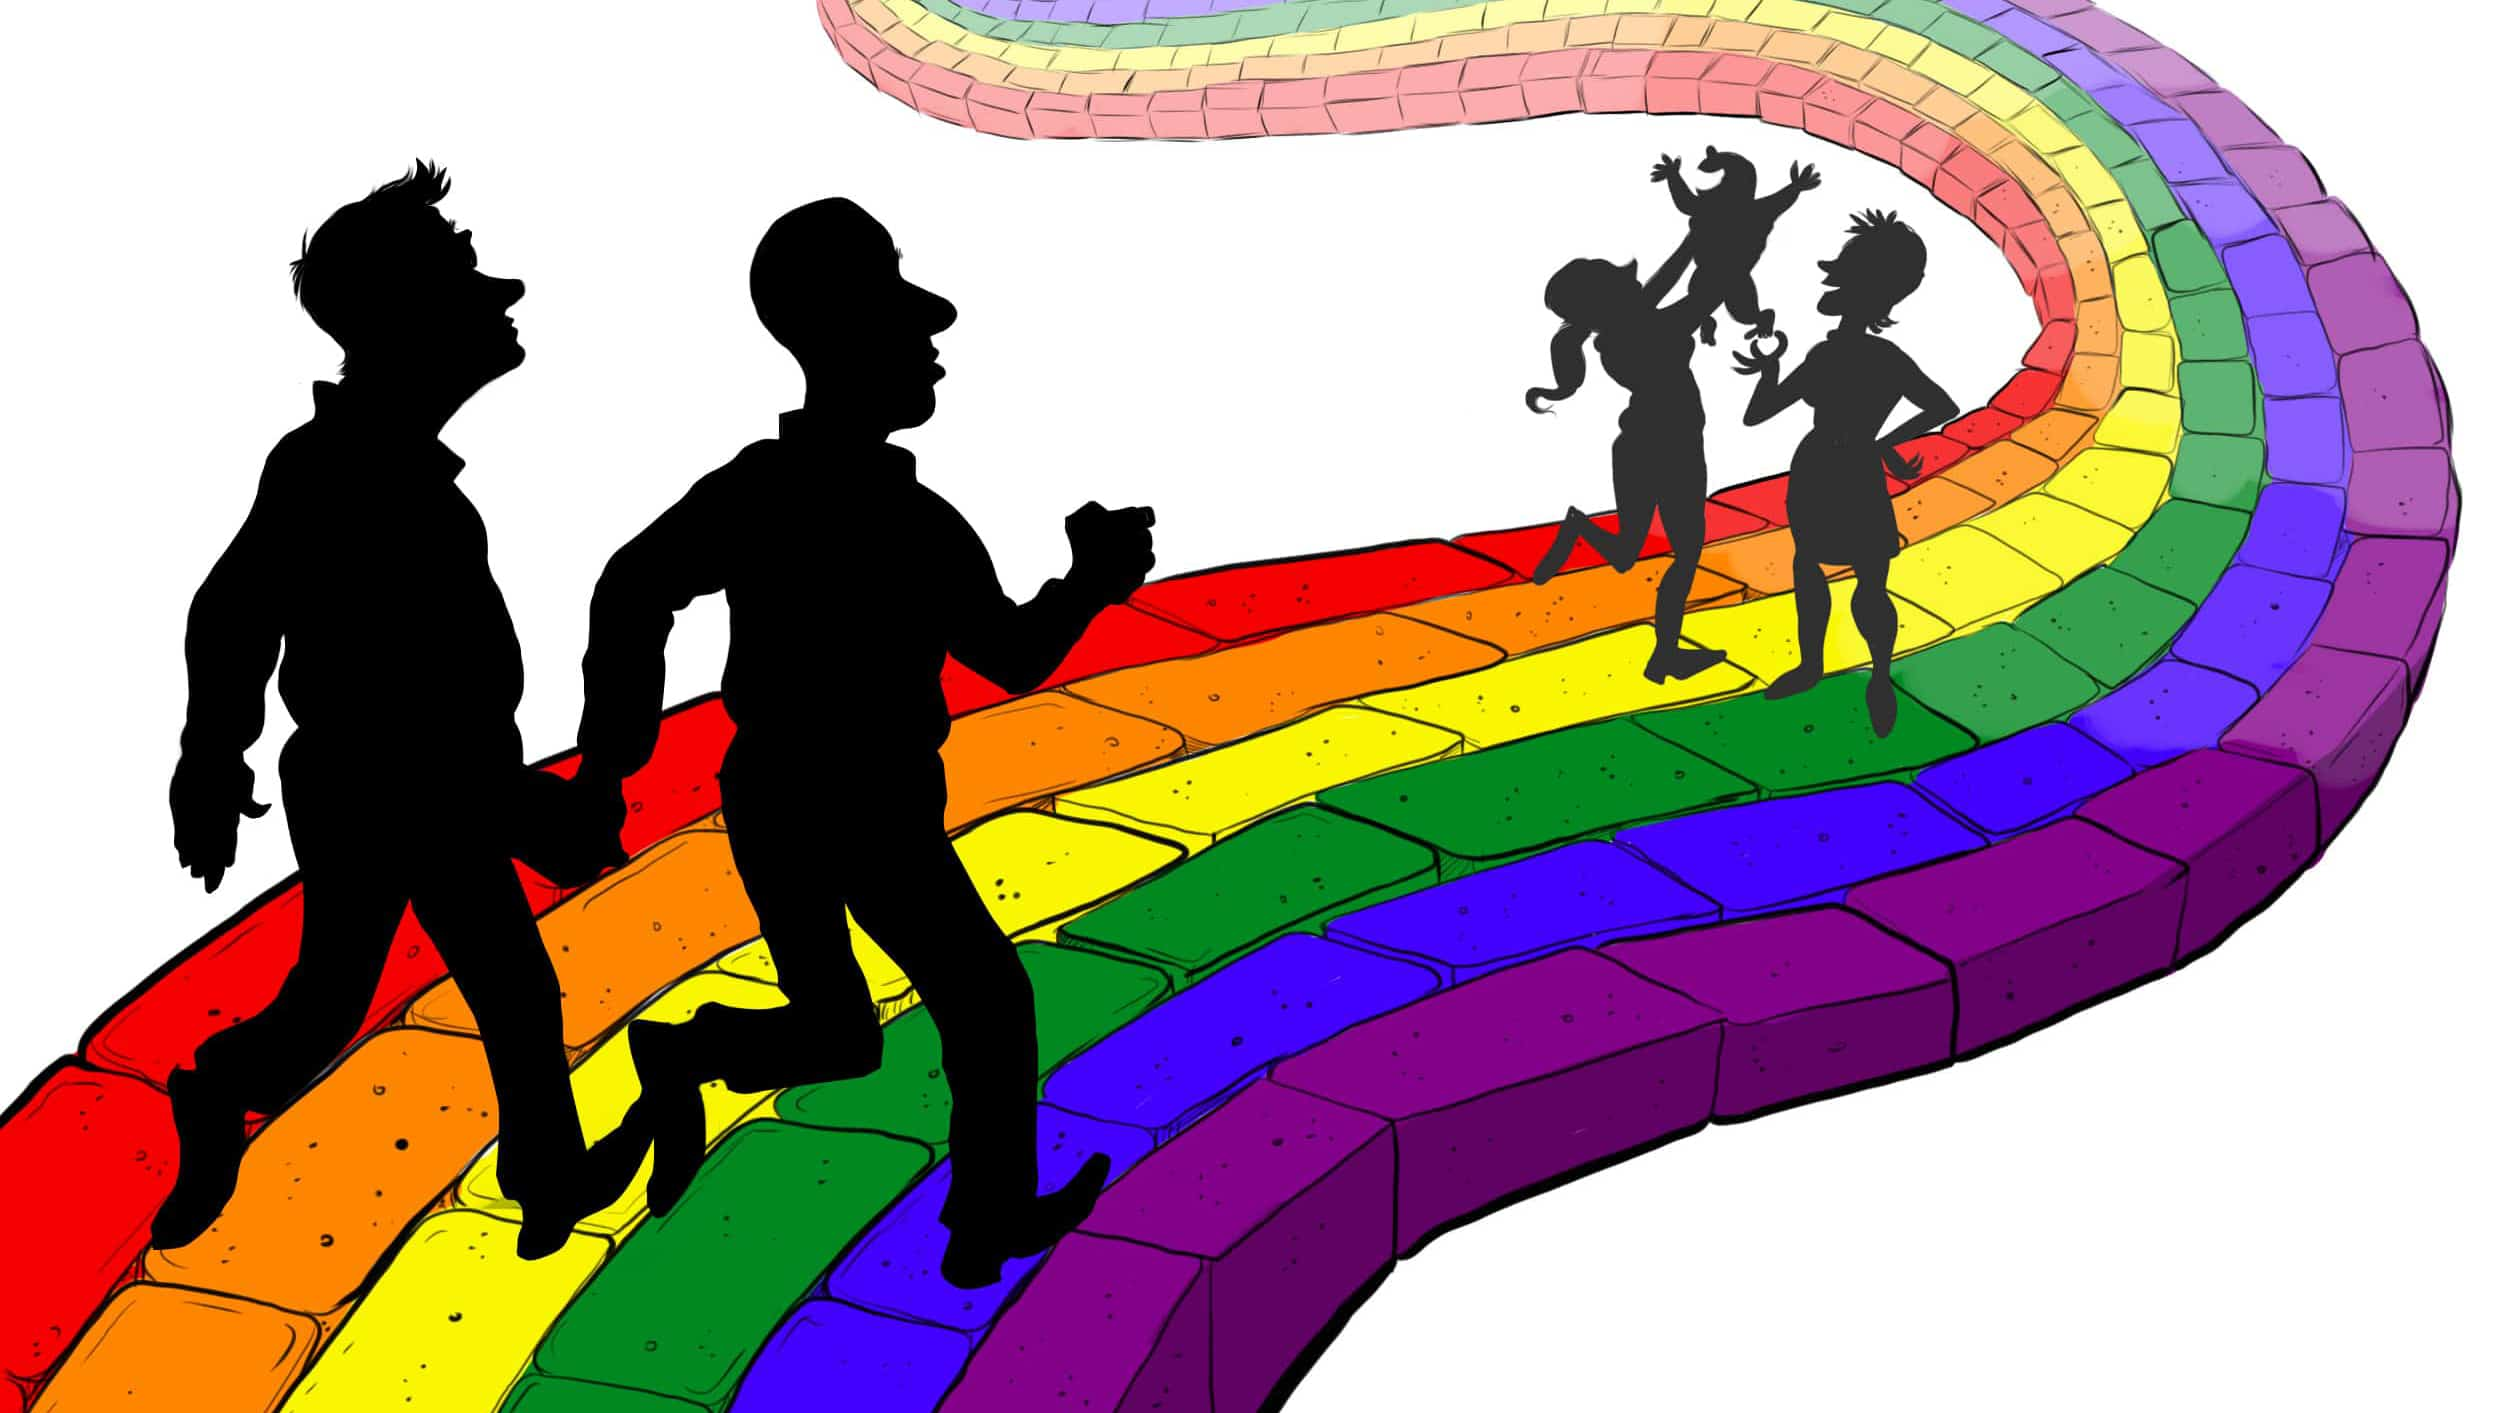 A cartoon illustration of gay men and women couples with small children walking on a rainbow brick road.